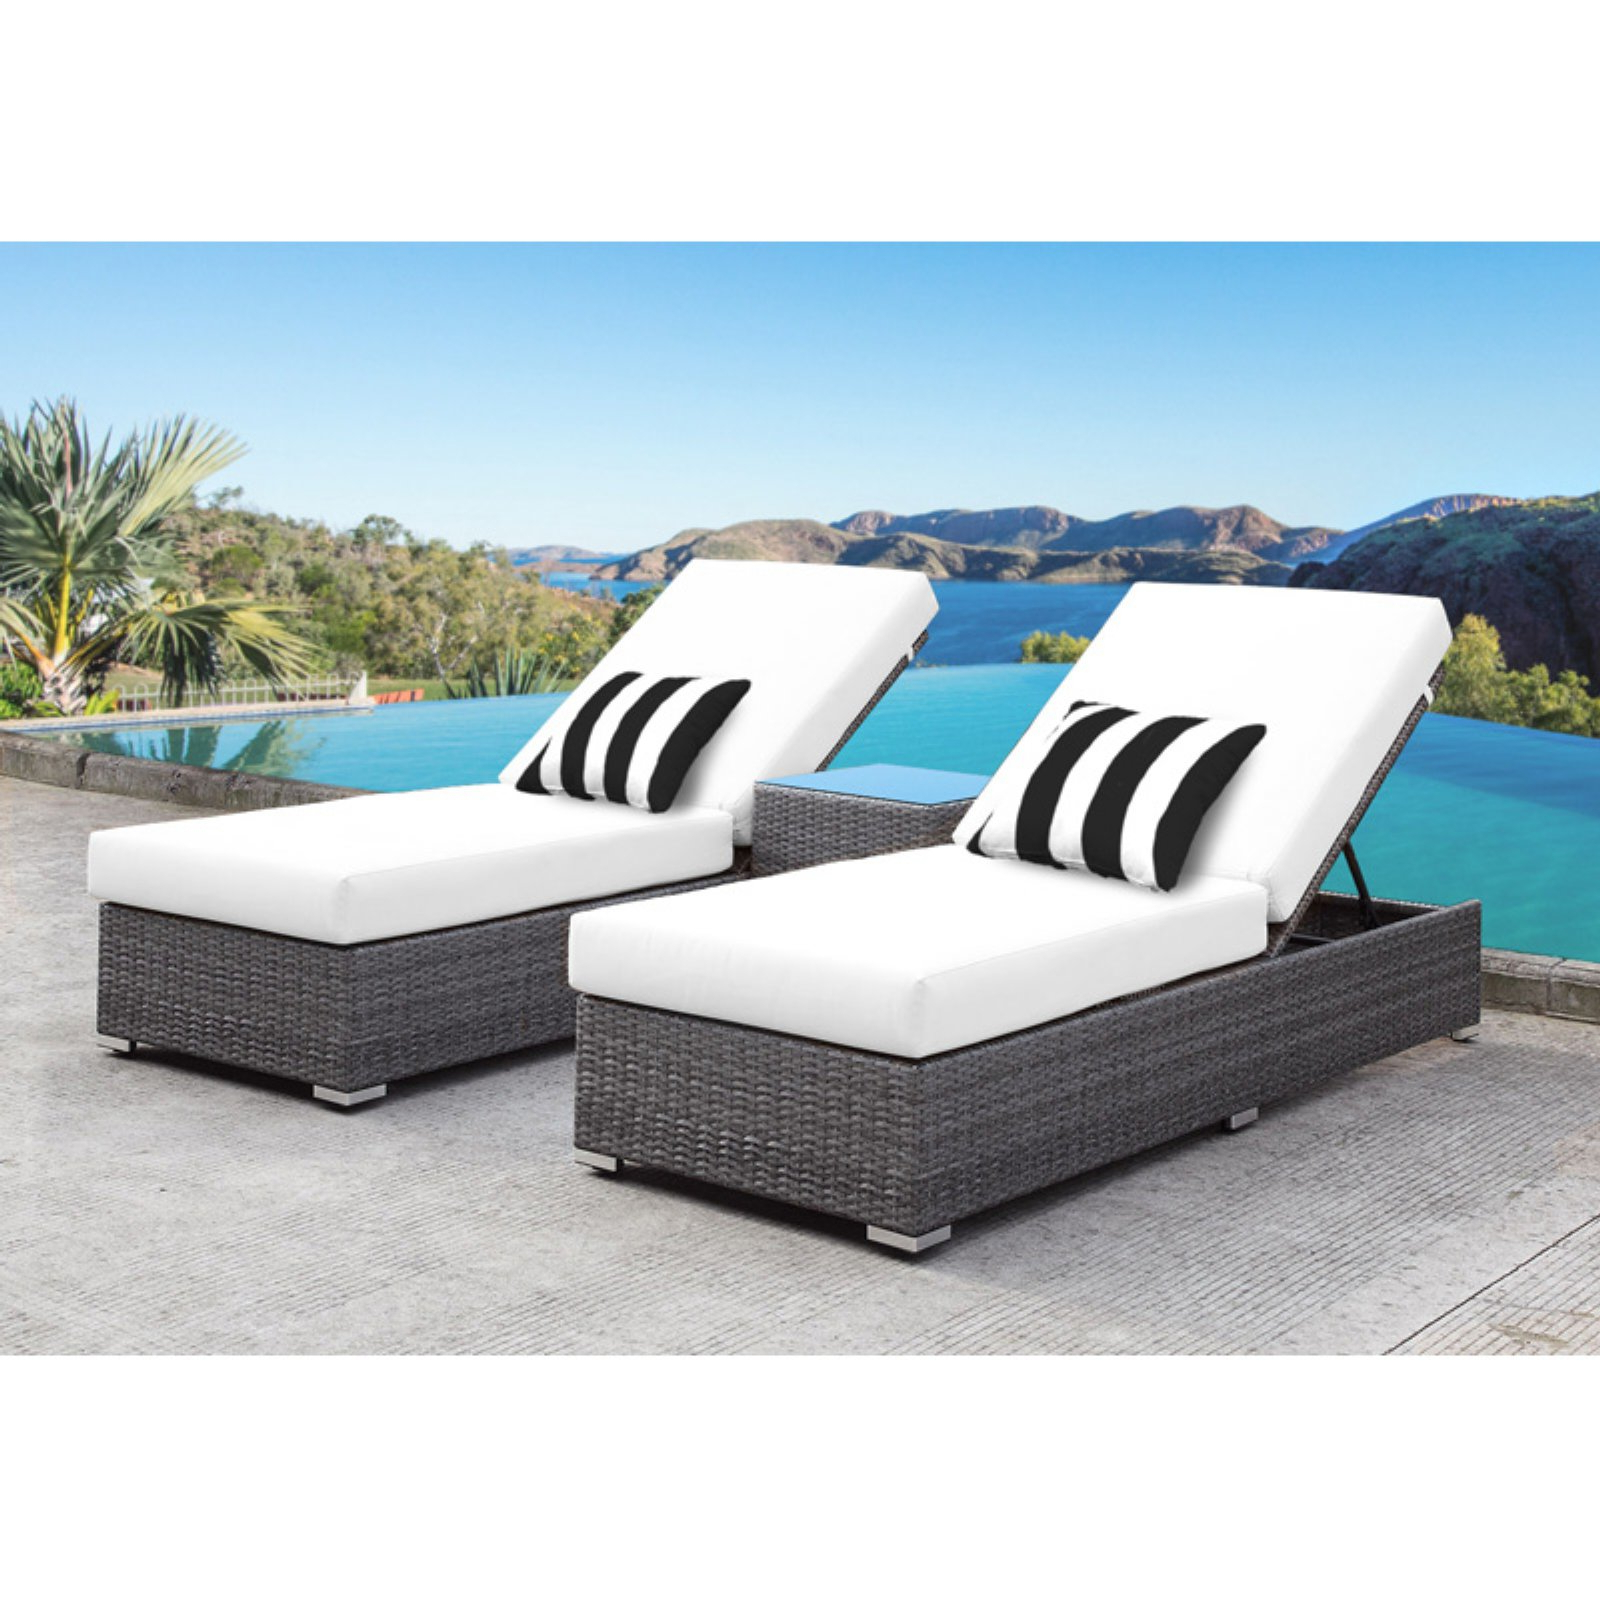 Famous Outdoor Solis Lusso Rattan Wicker 3 Piece Patio Chaise Intended For 3 Piece Patio Lounger Sets (View 9 of 25)